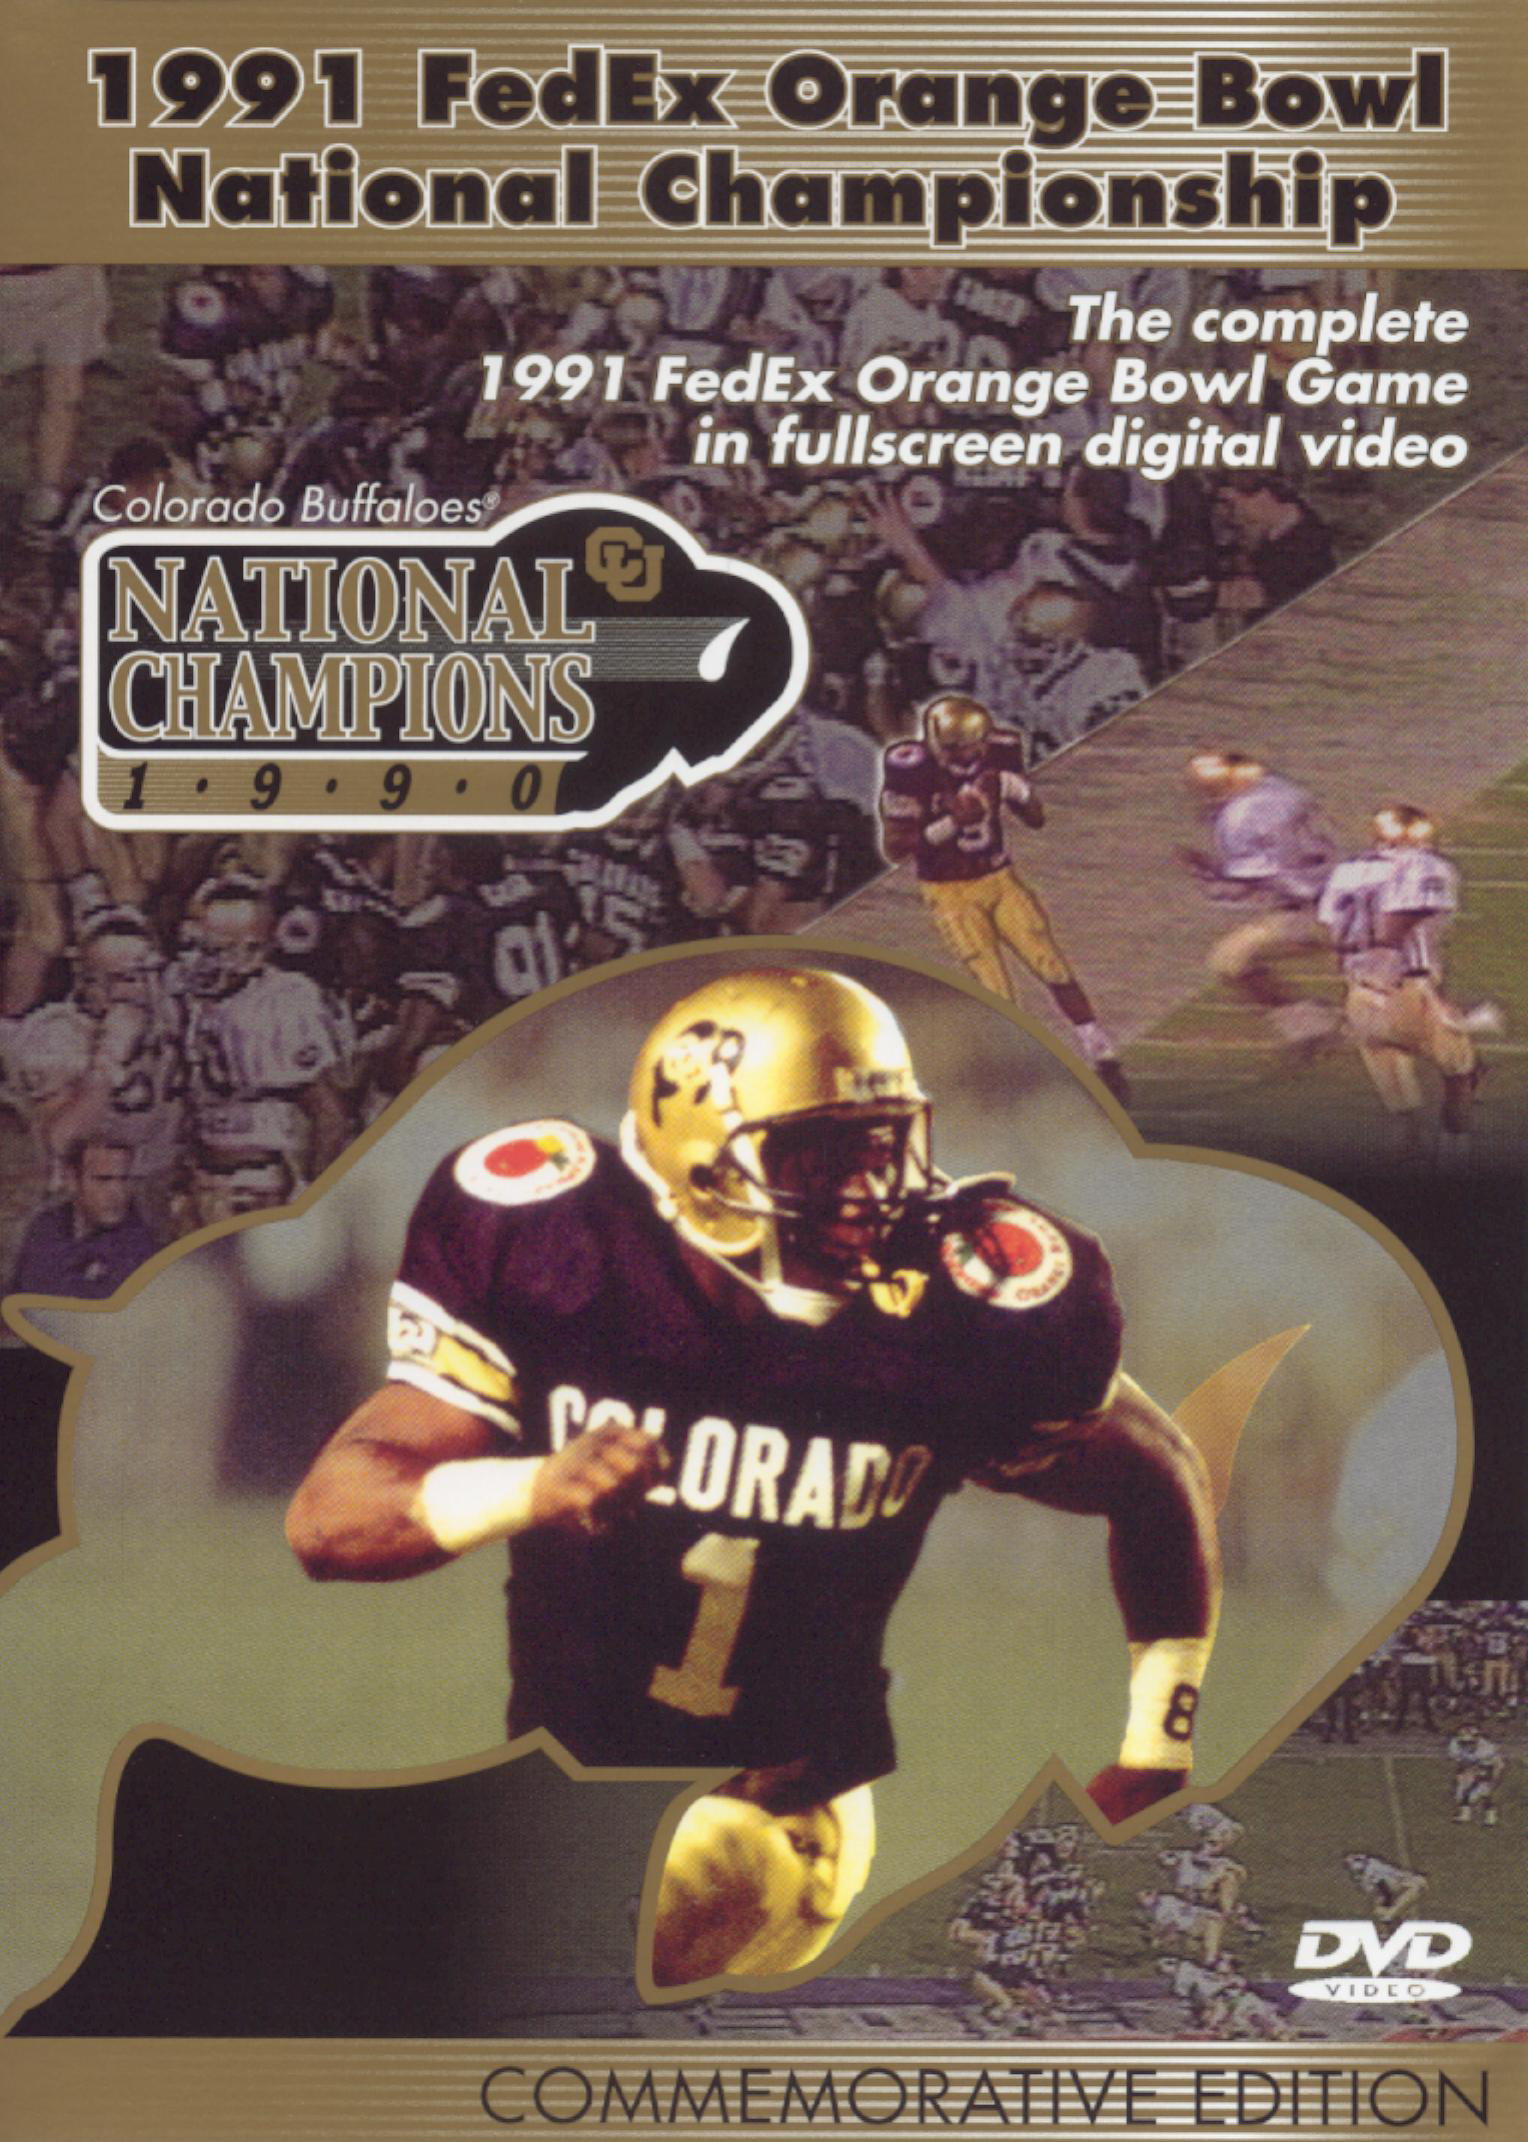 Colorado Buffaloes: 1991 FedEx Orange Bowl National Championship